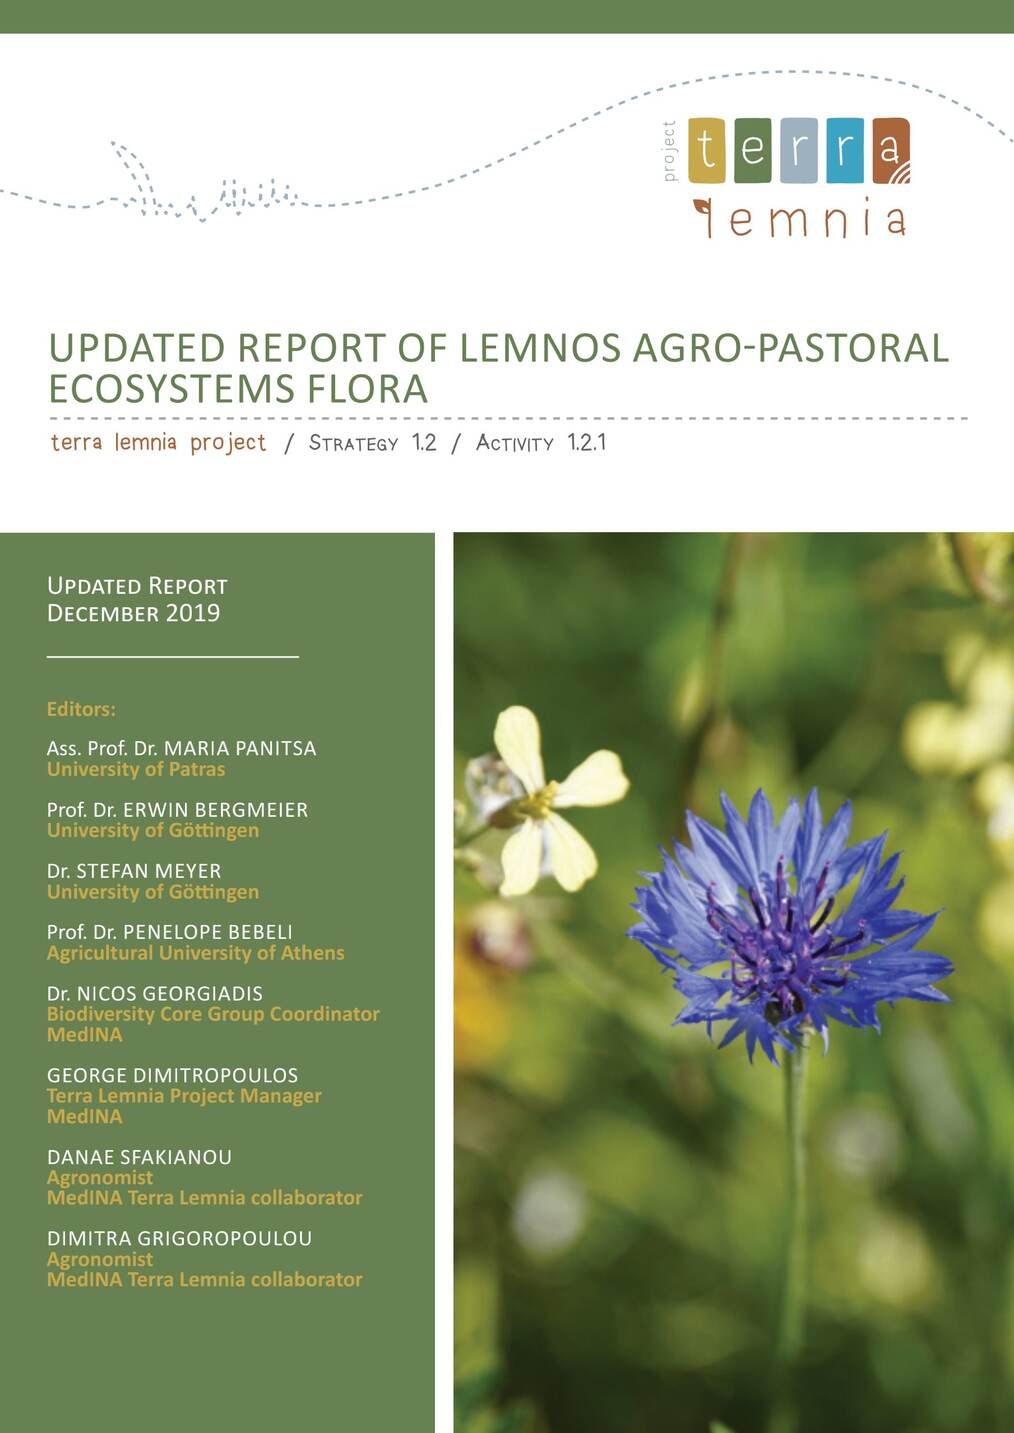 Report of Lemnos Agro-Pastoral Ecosystems Flora